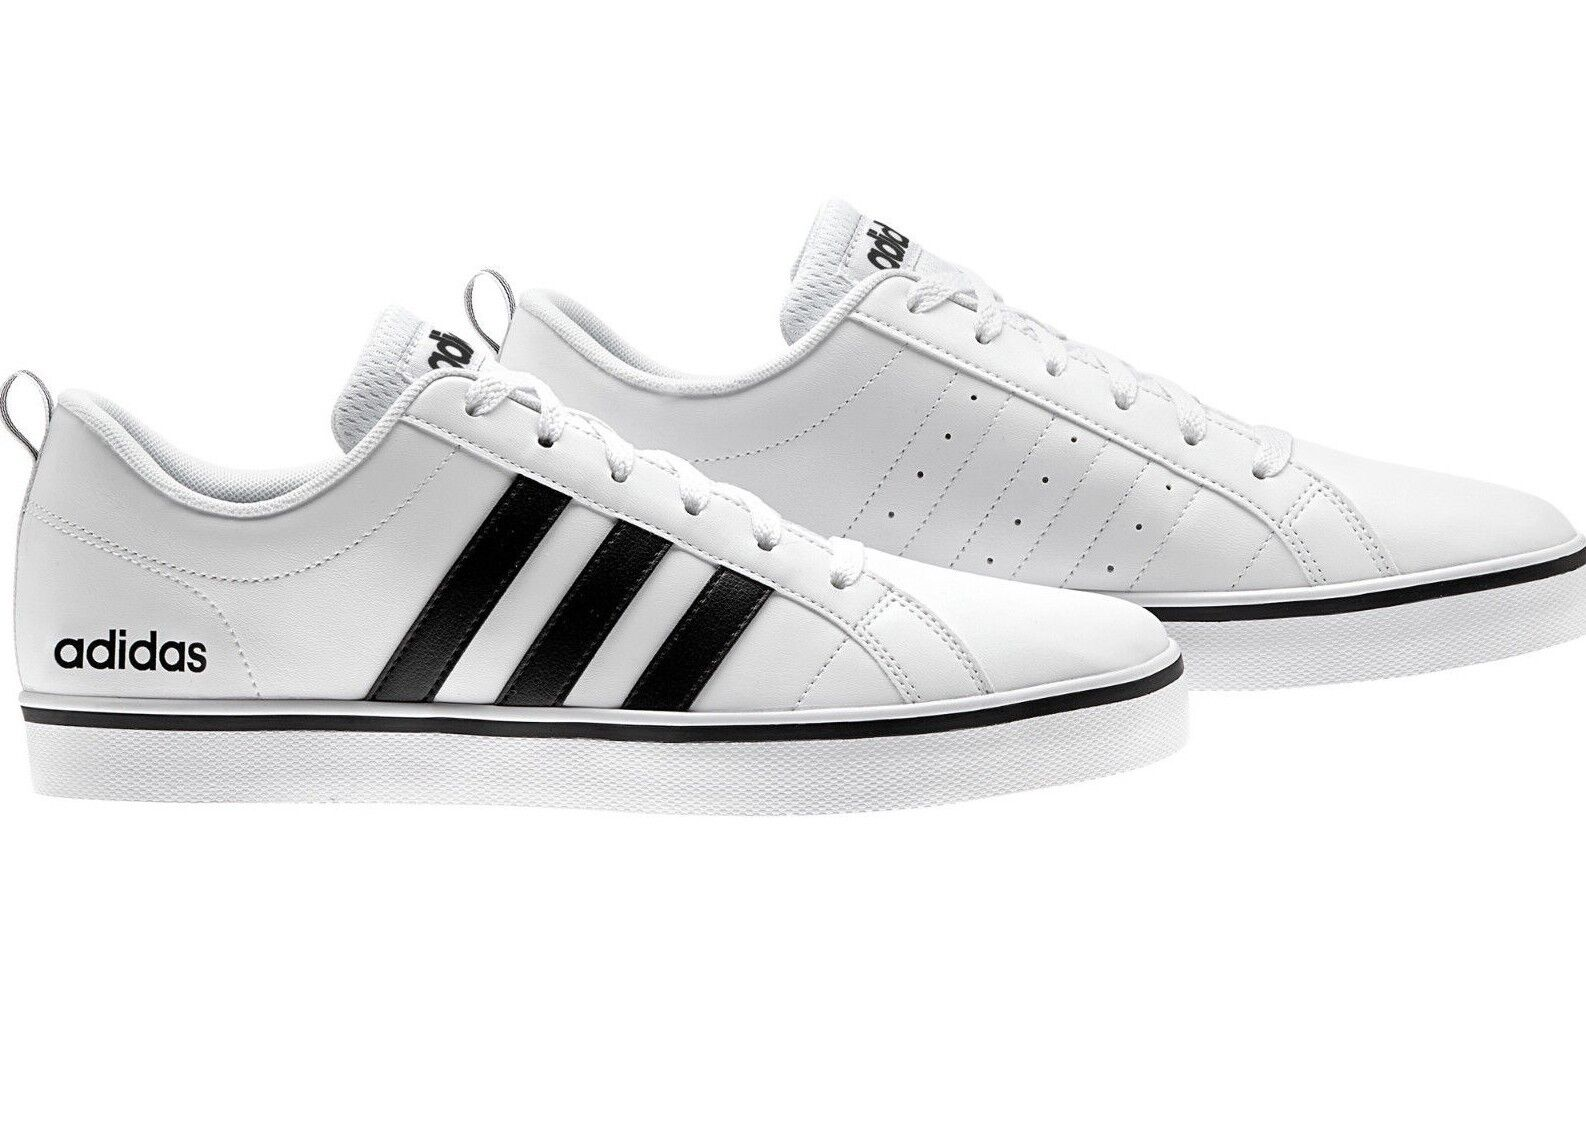 adidas Men Neo Shoes Daily Team Trainers Casual Fashion Shoe